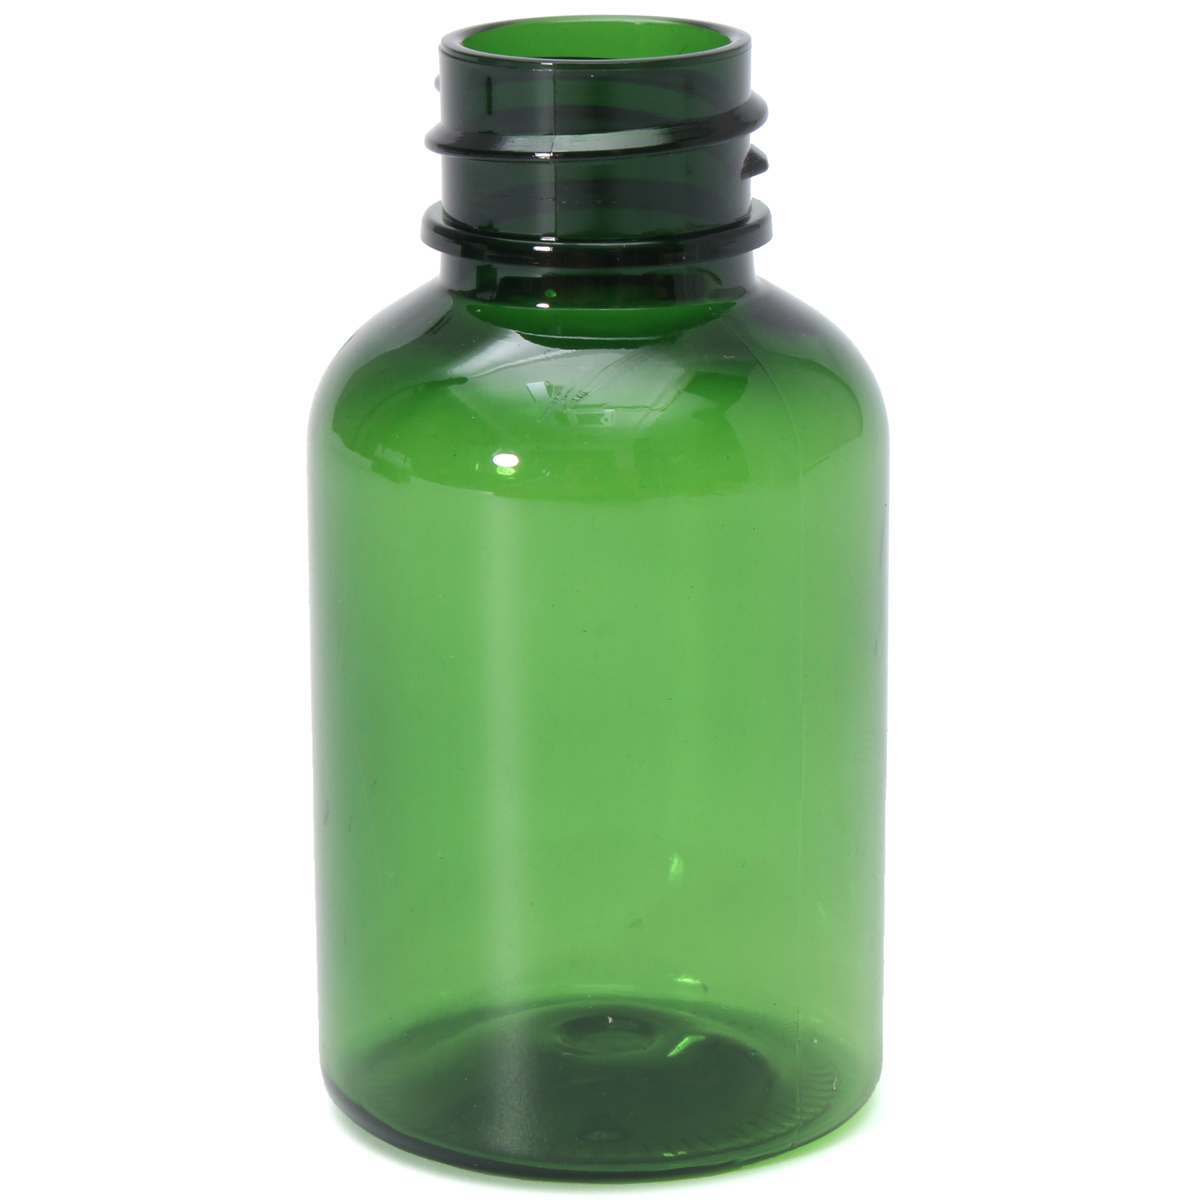 10pcs Empty Green Plastic Refillable Bottles Dropper 35ml